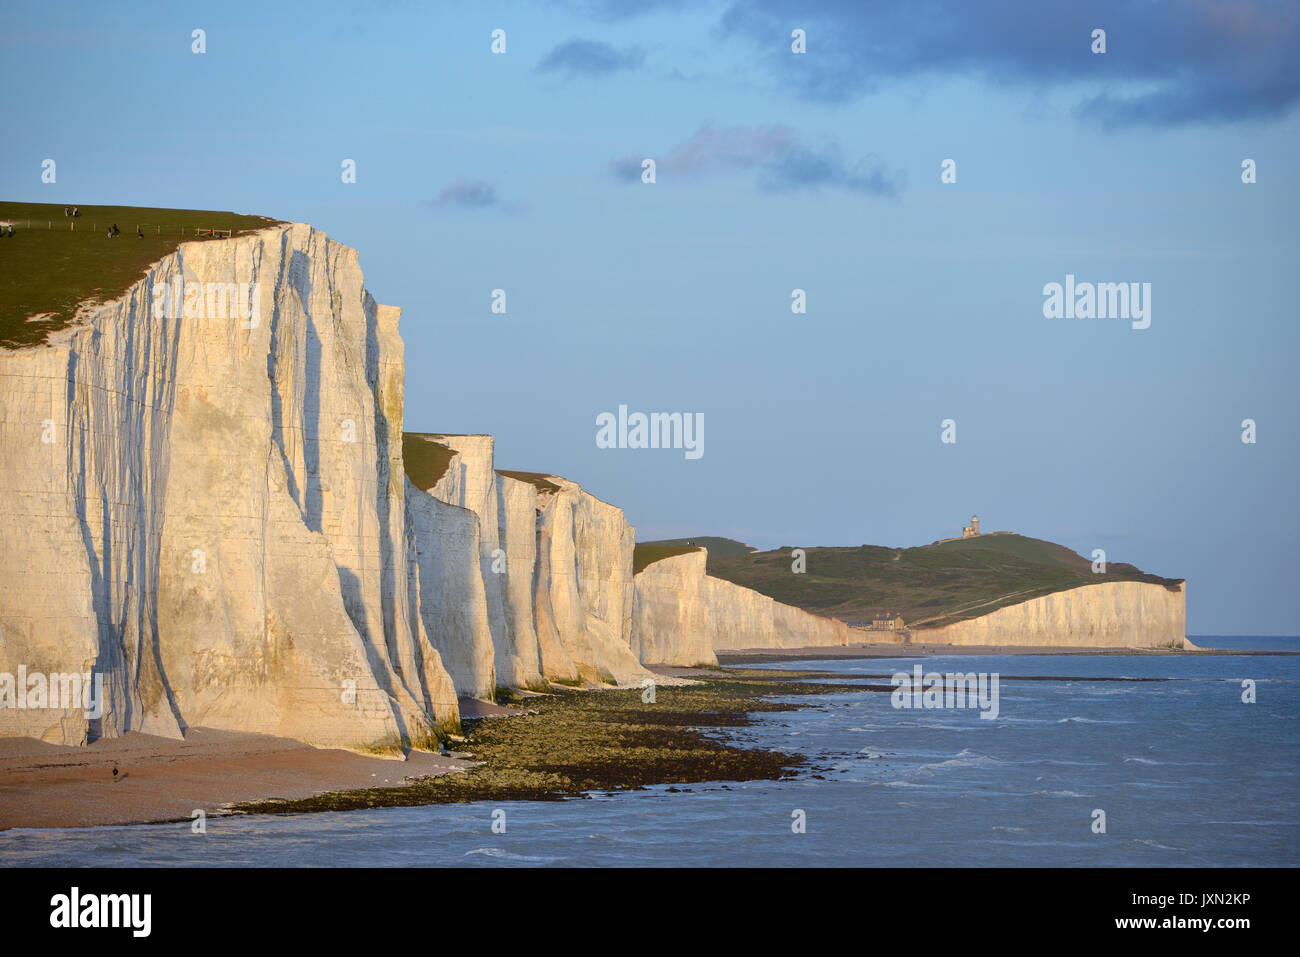 Seven Sisters chalk cliffs at sunset. - Stock Image